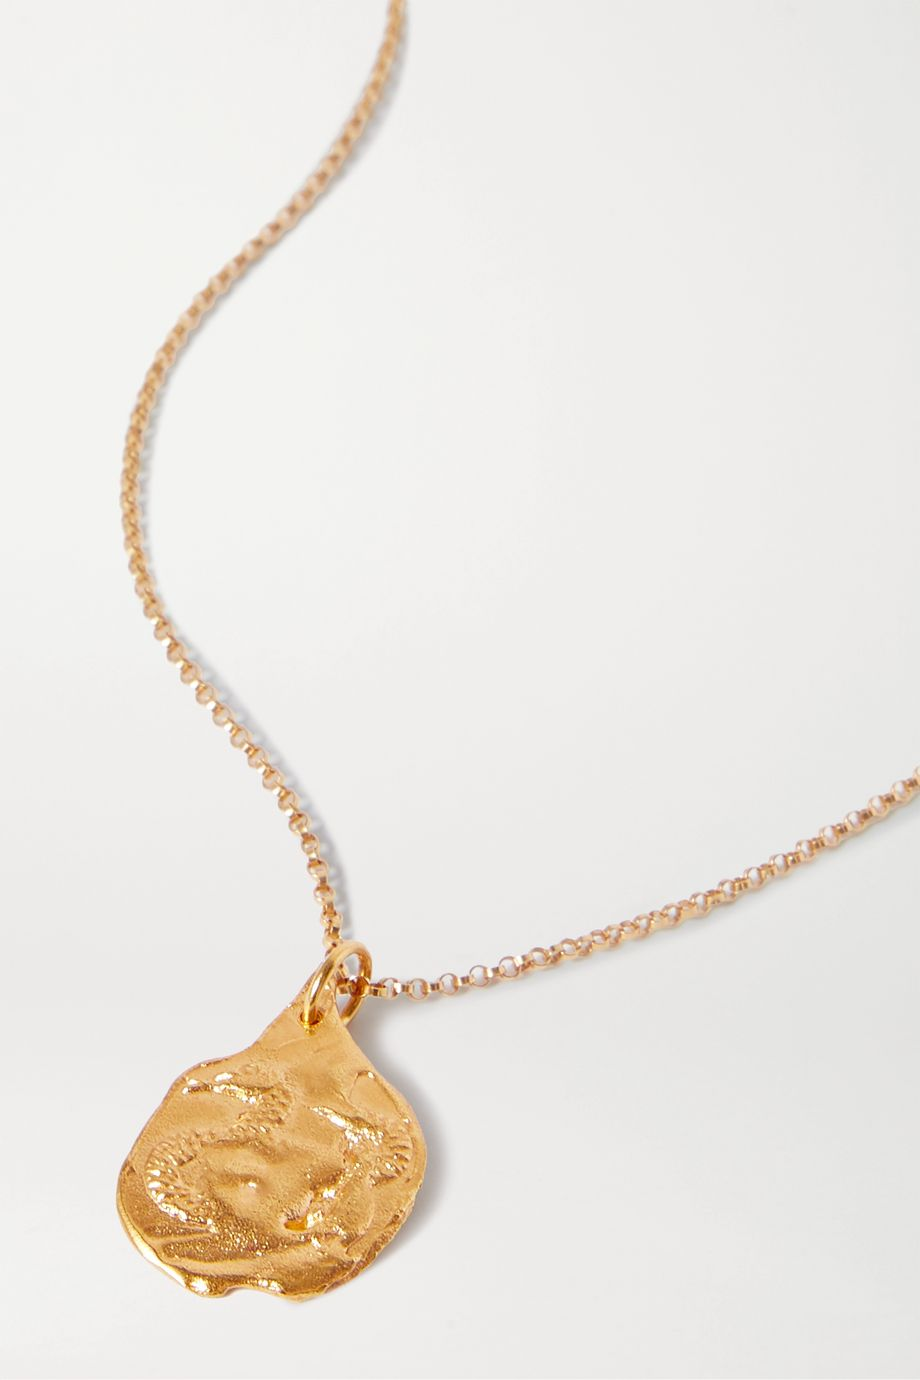 Alighieri Year of the Snake gold-plated necklace